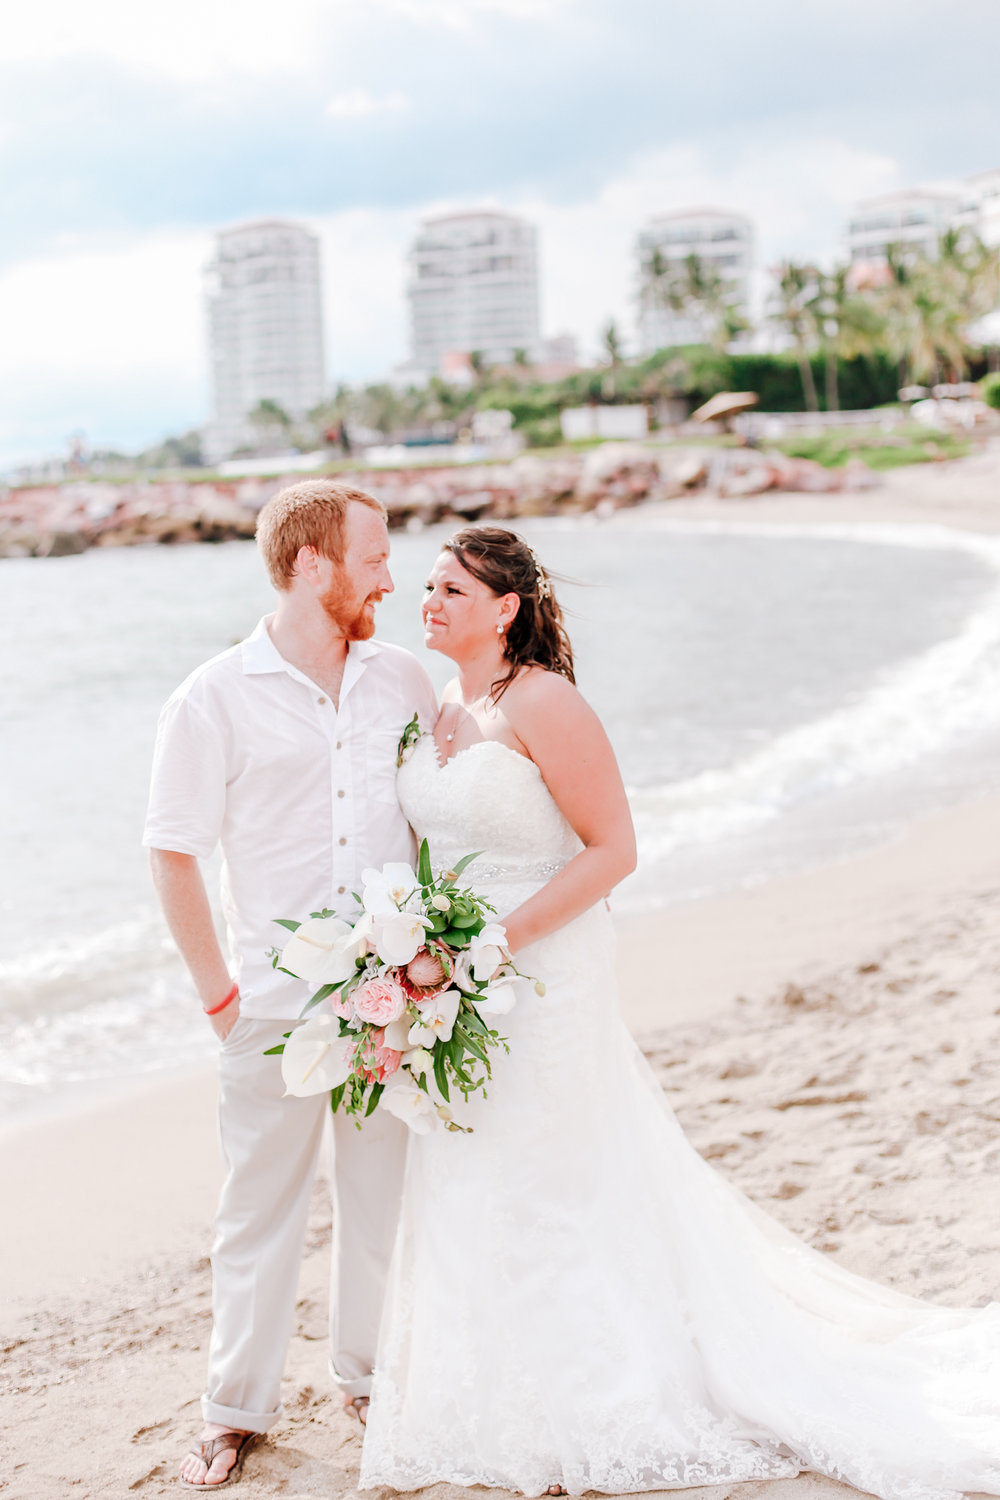 Tiffany and Ryan - Puerto Vallarta Wedding Photographer - 101.jpg